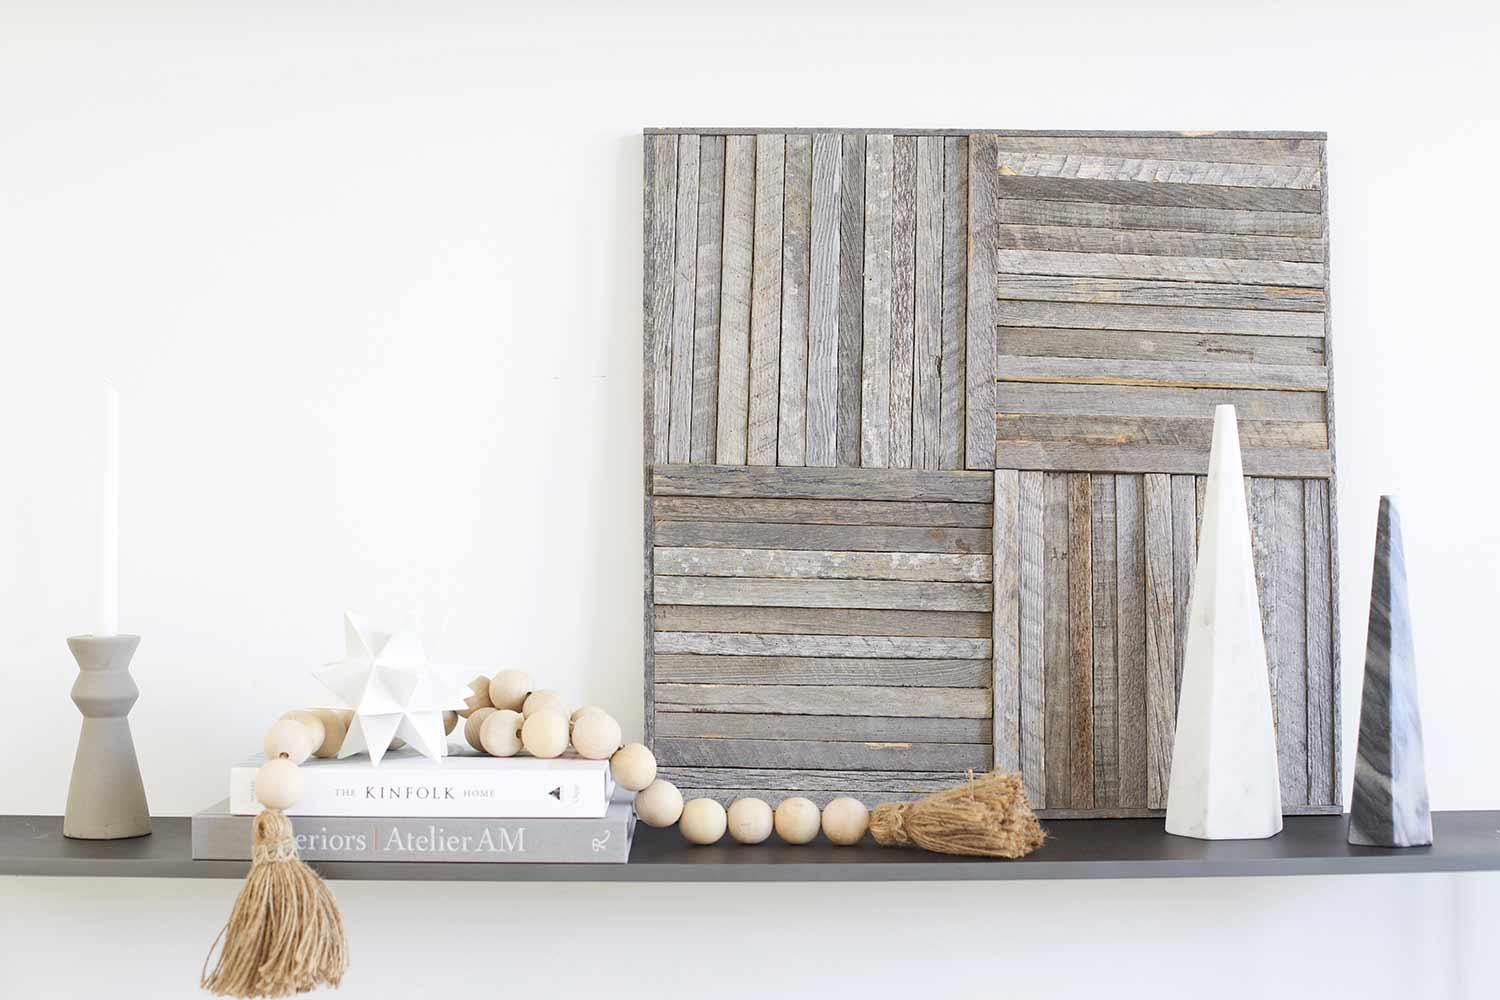 Stikwood wall art on credenza